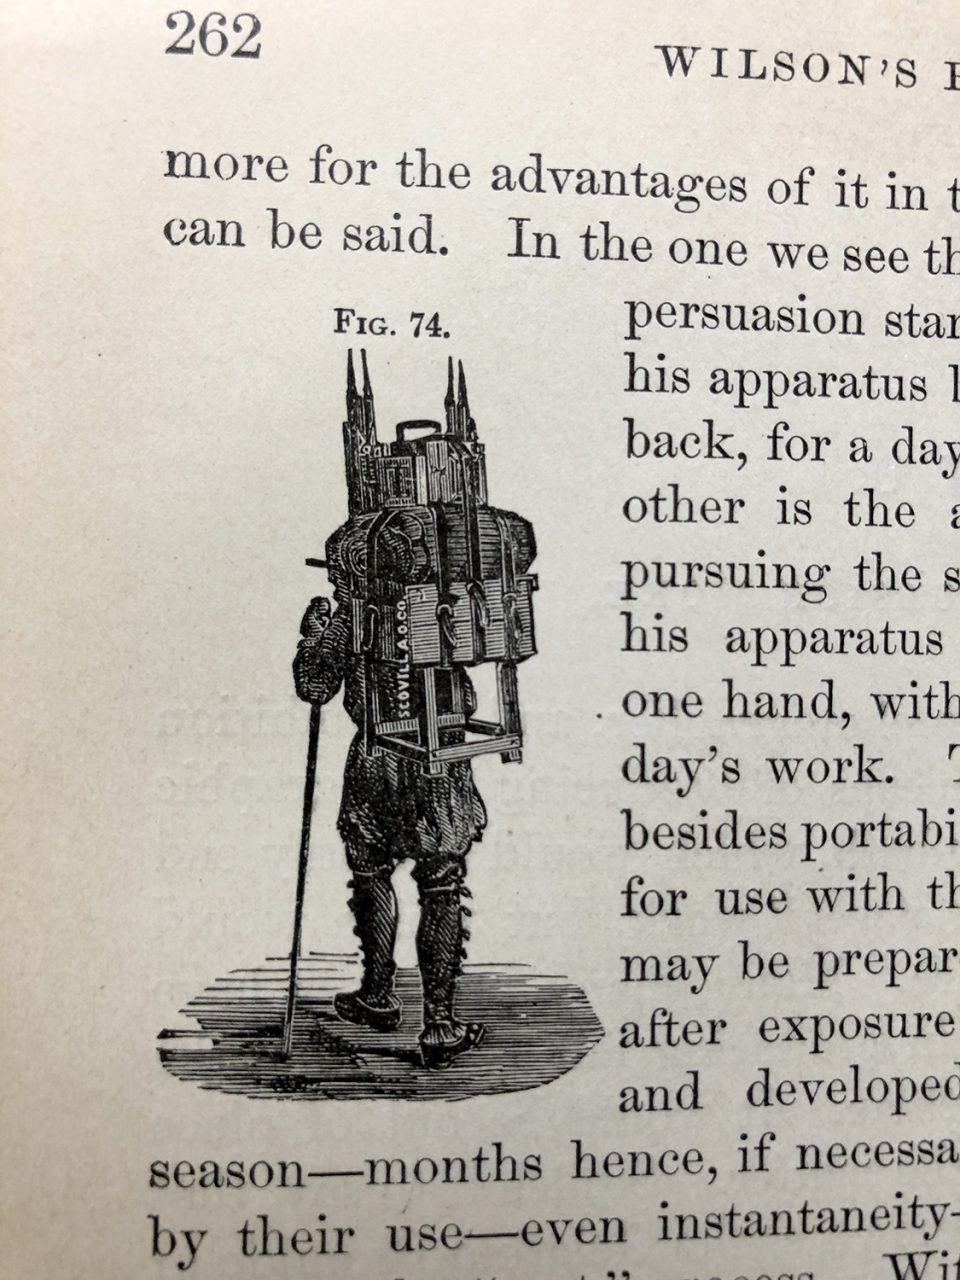 1881 version of a camera backpack, from page 262 of Wilson's Photographics, published 1881.